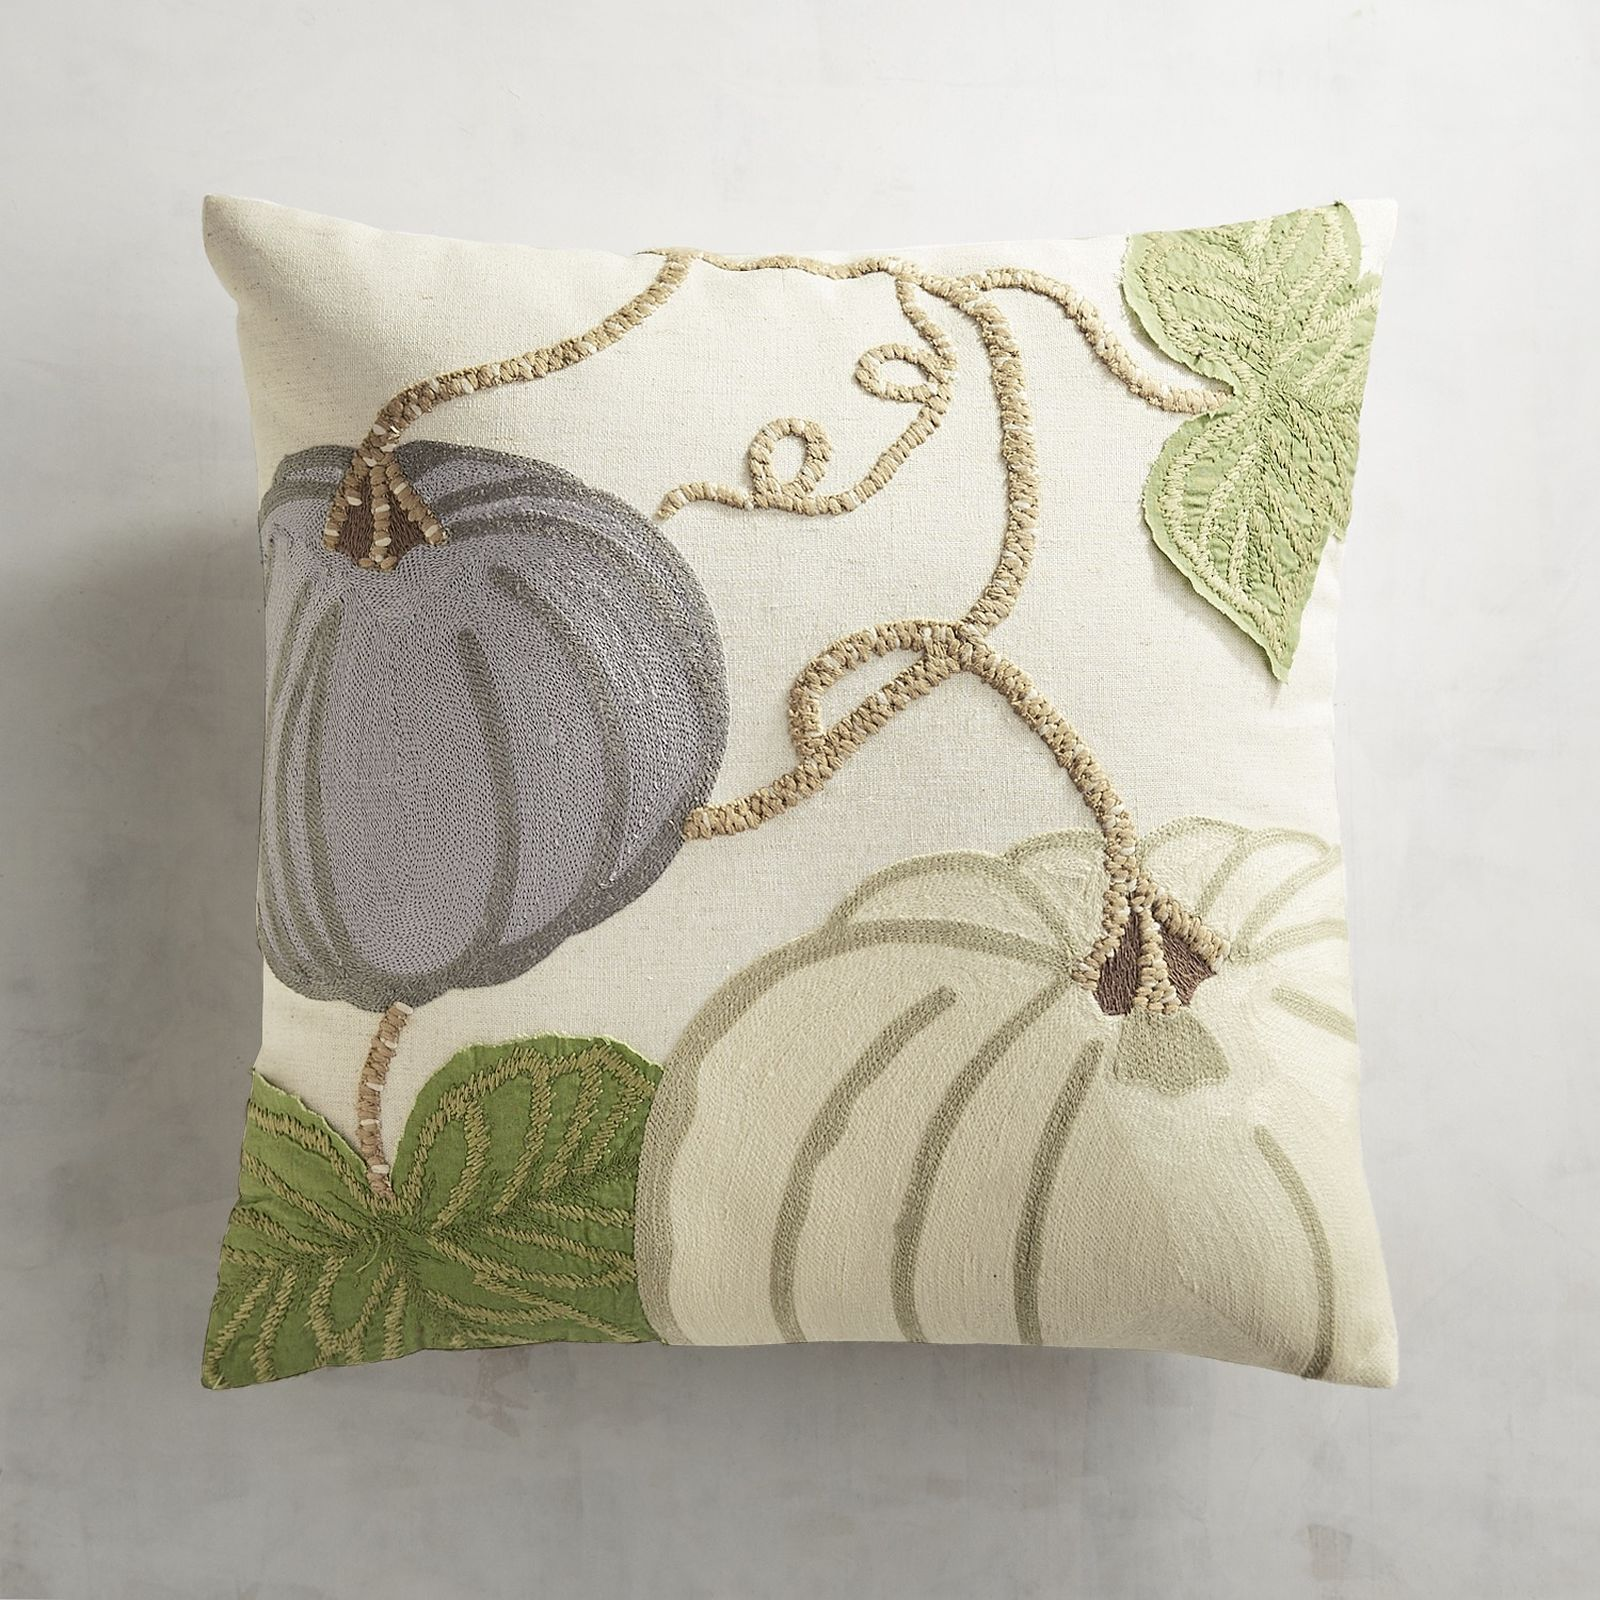 Brandi Raae Wildwood Cottage Collection from Pier 1 Imports